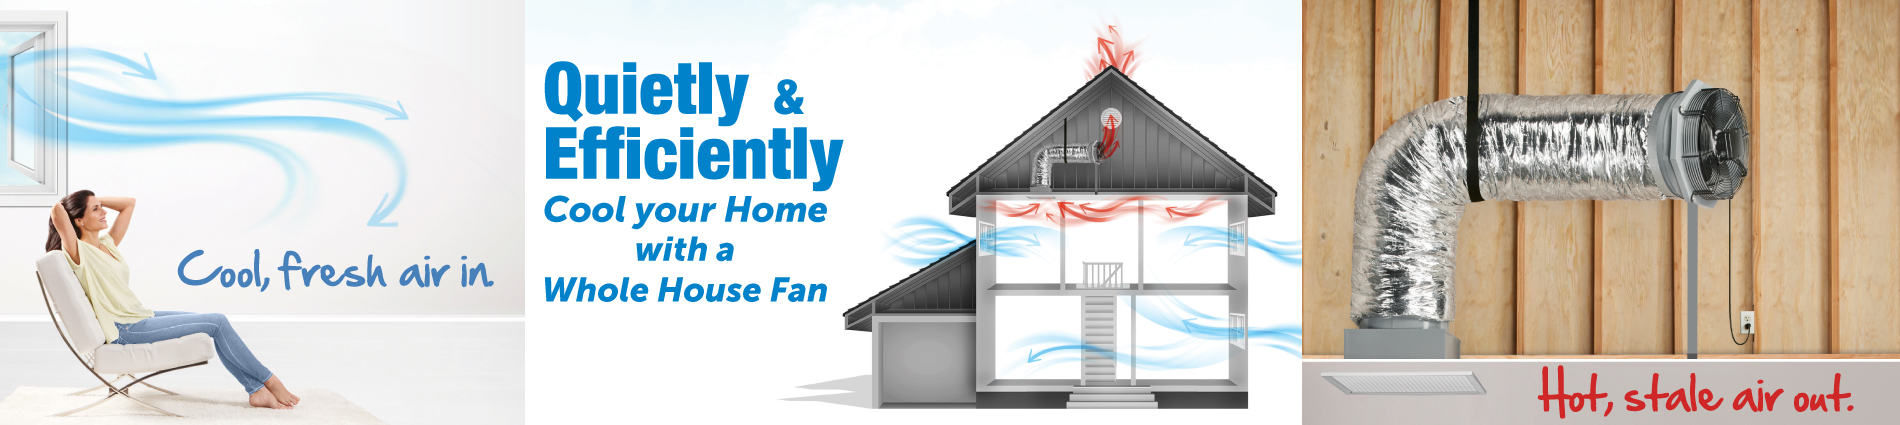 Byers Solatube - Whole House Fan - Cool your home quietly and efficiently